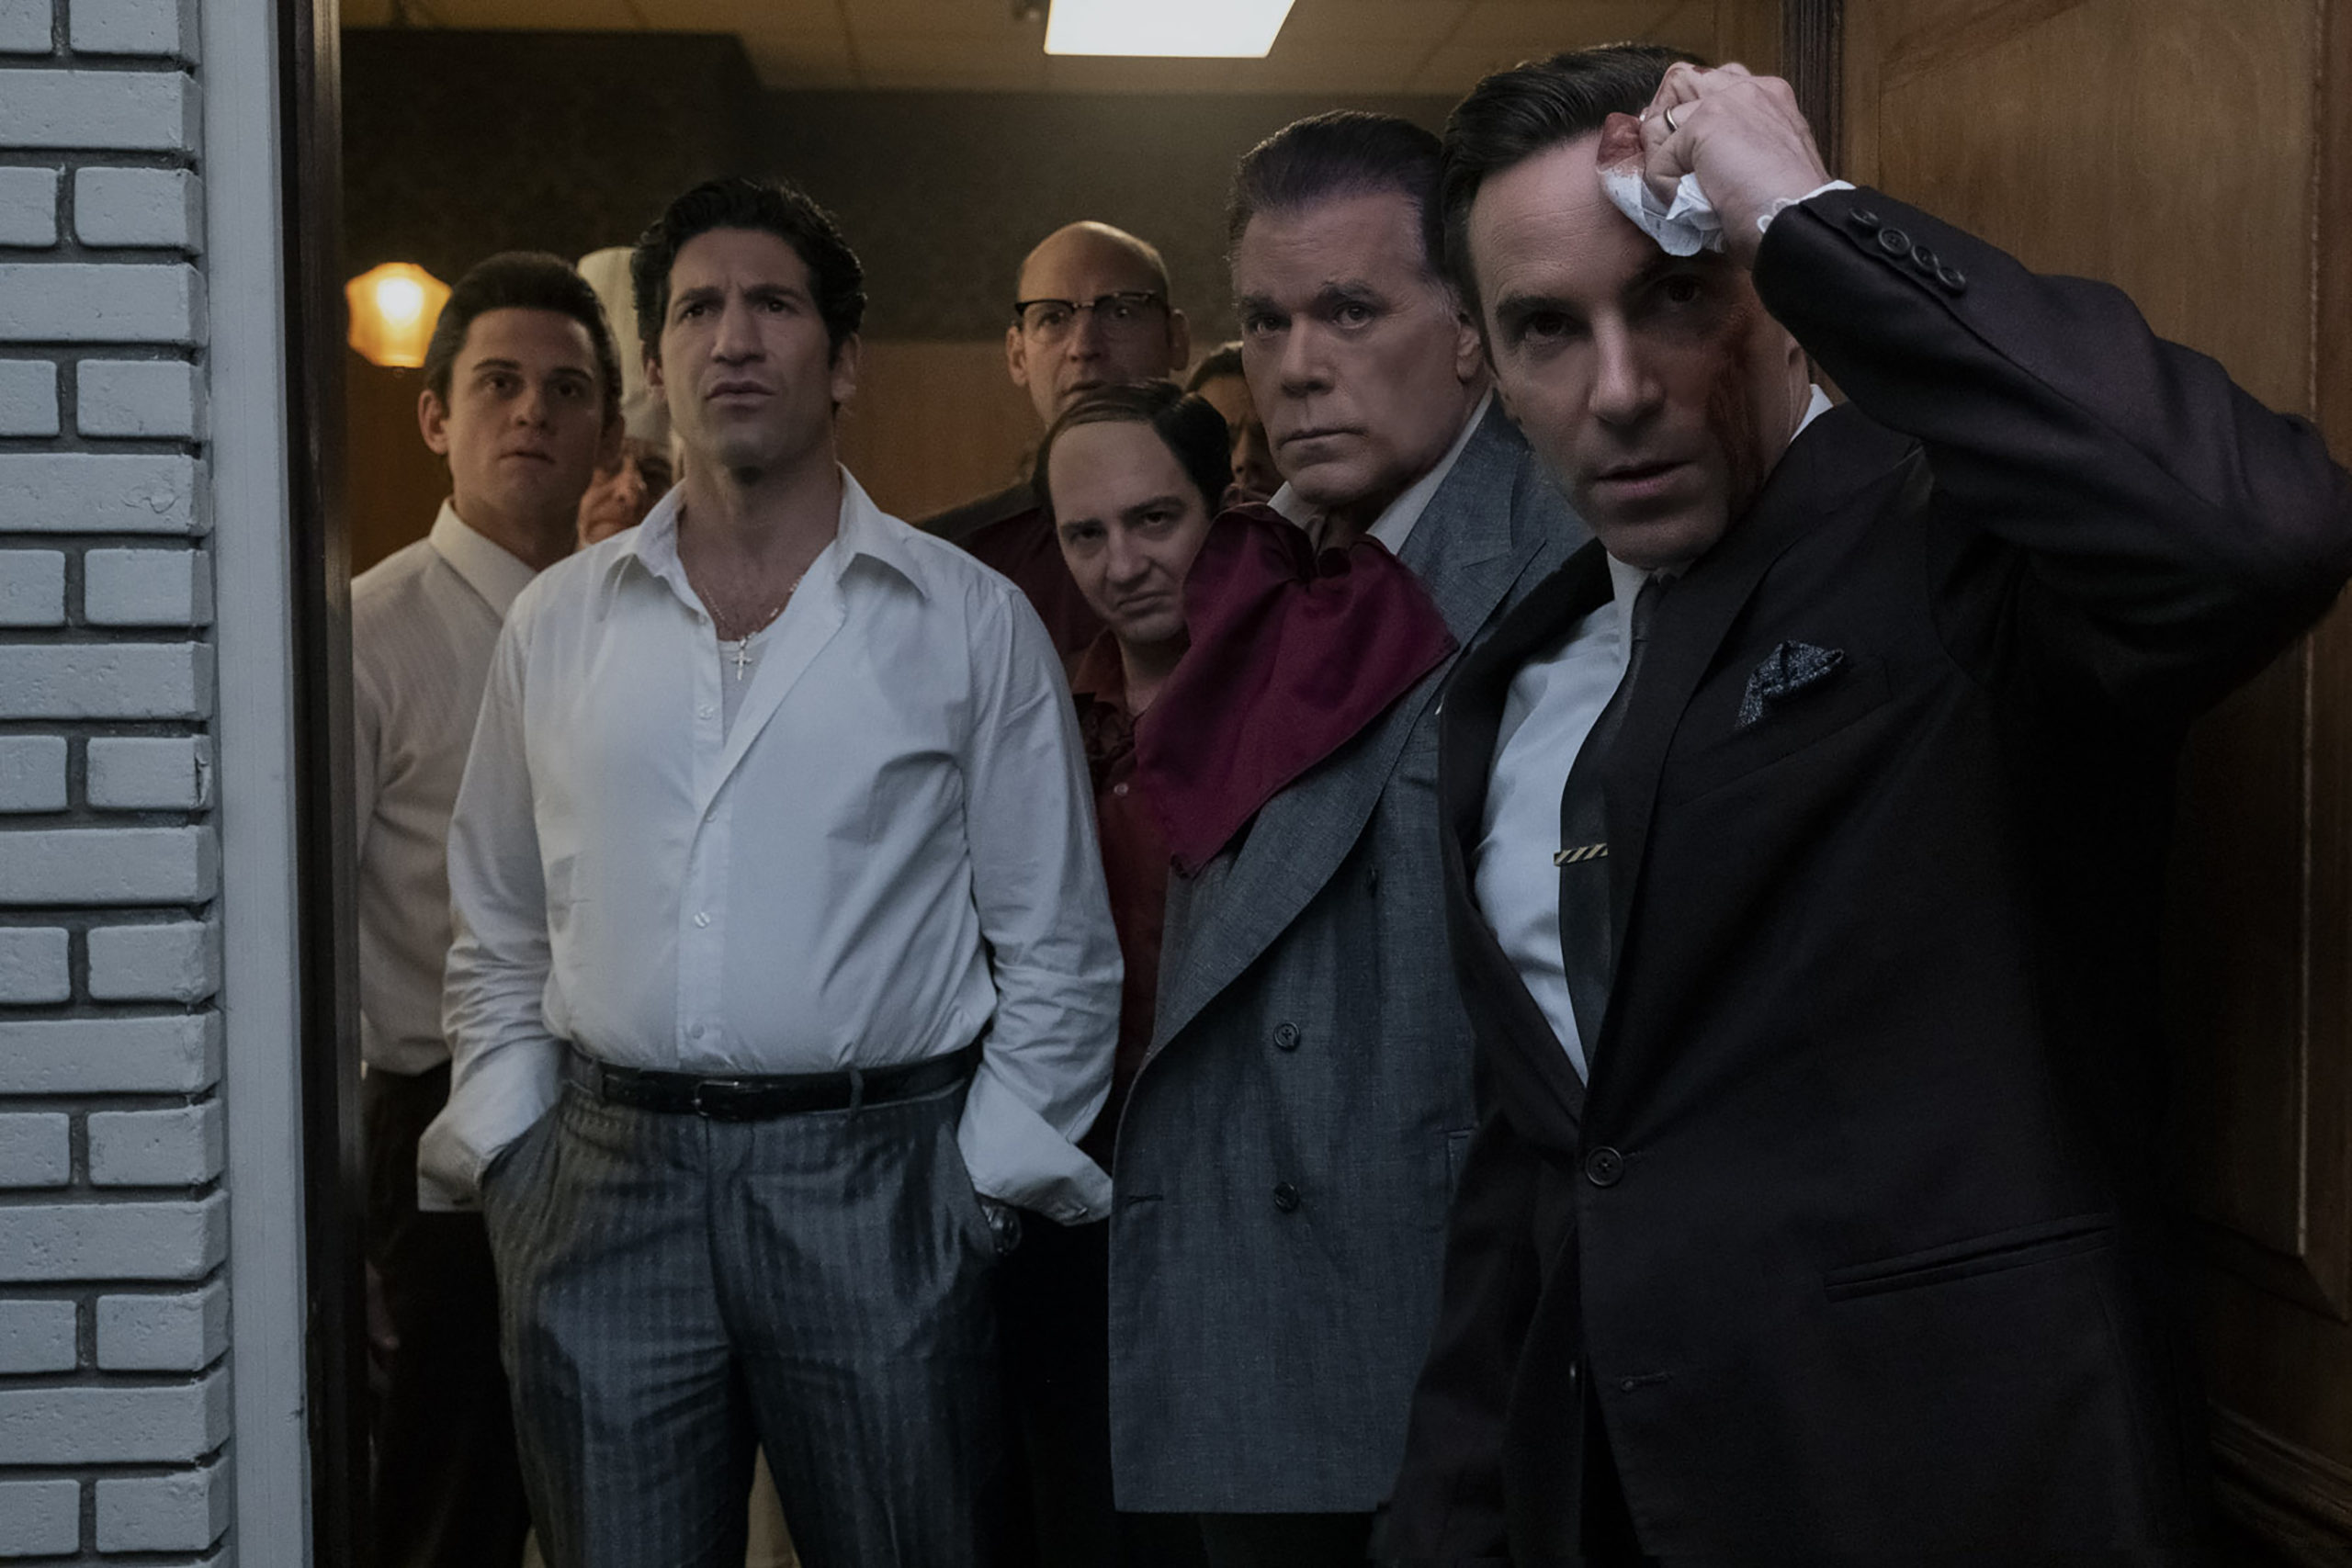 The Many Saints Of Newark Trailer Gets Us Ready For The Sopranos Prequel Film